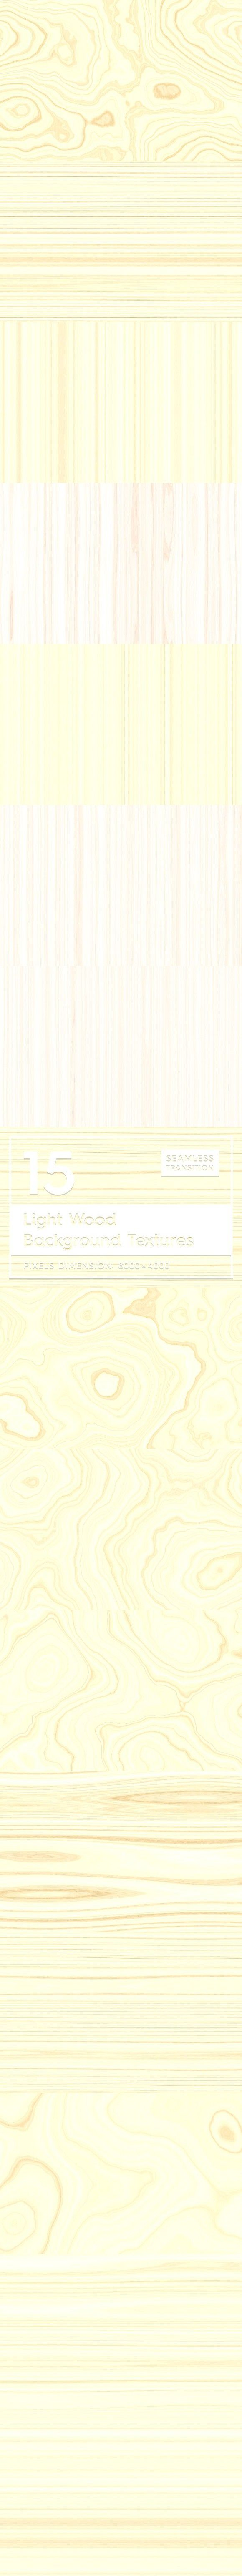 15 Light Wood Background Textures #light-tree #surface